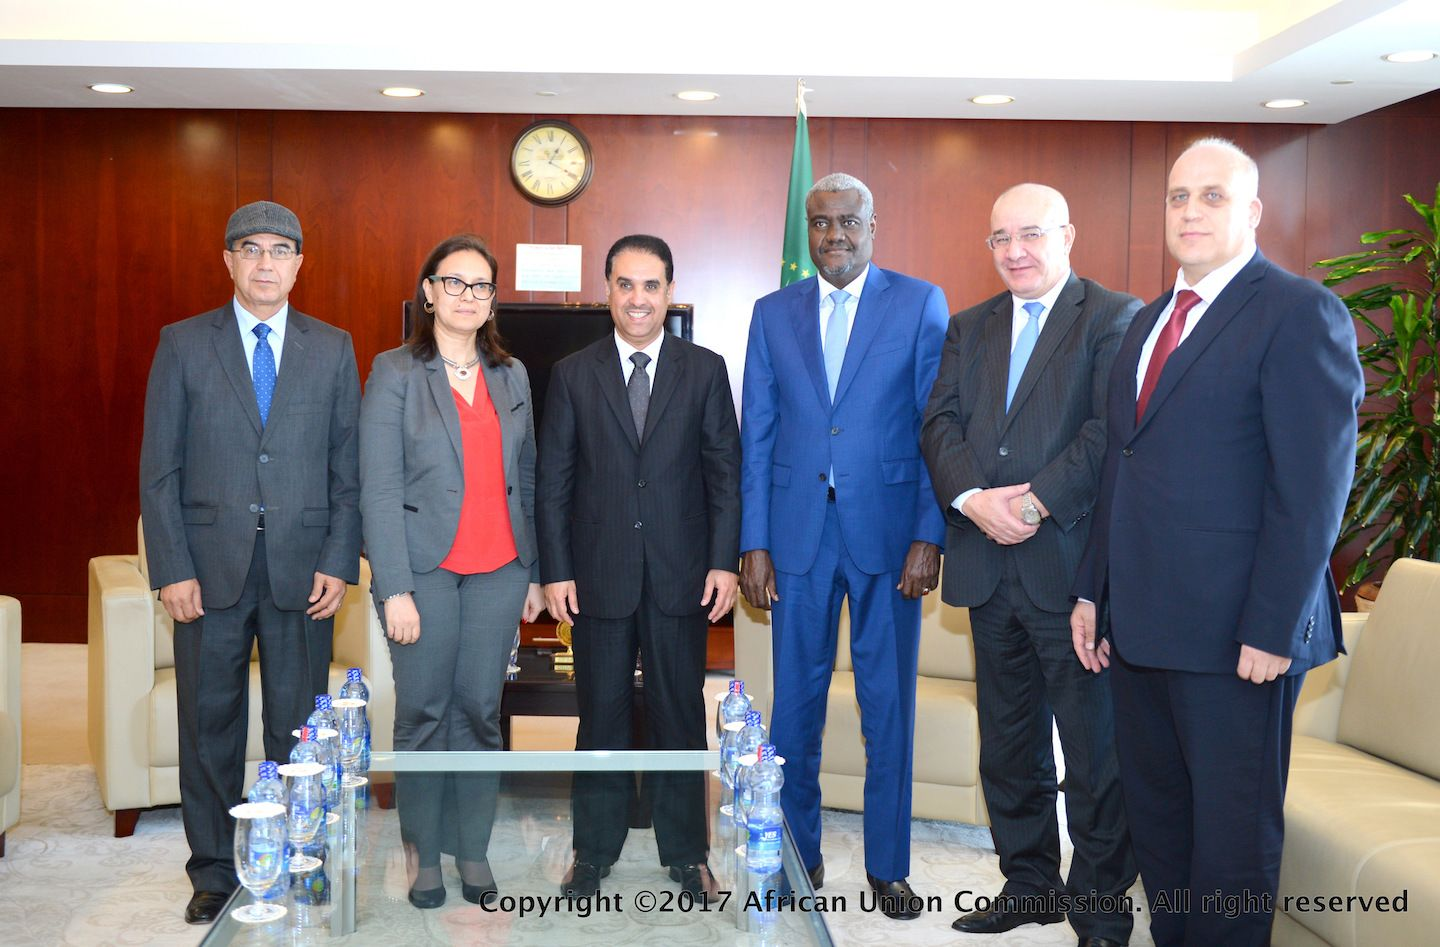 The Chairperson of the African Union Commission HE Moussa Faki Mahamat received a delegation of the Council of Arab Ambassadors accredited to the African Union.